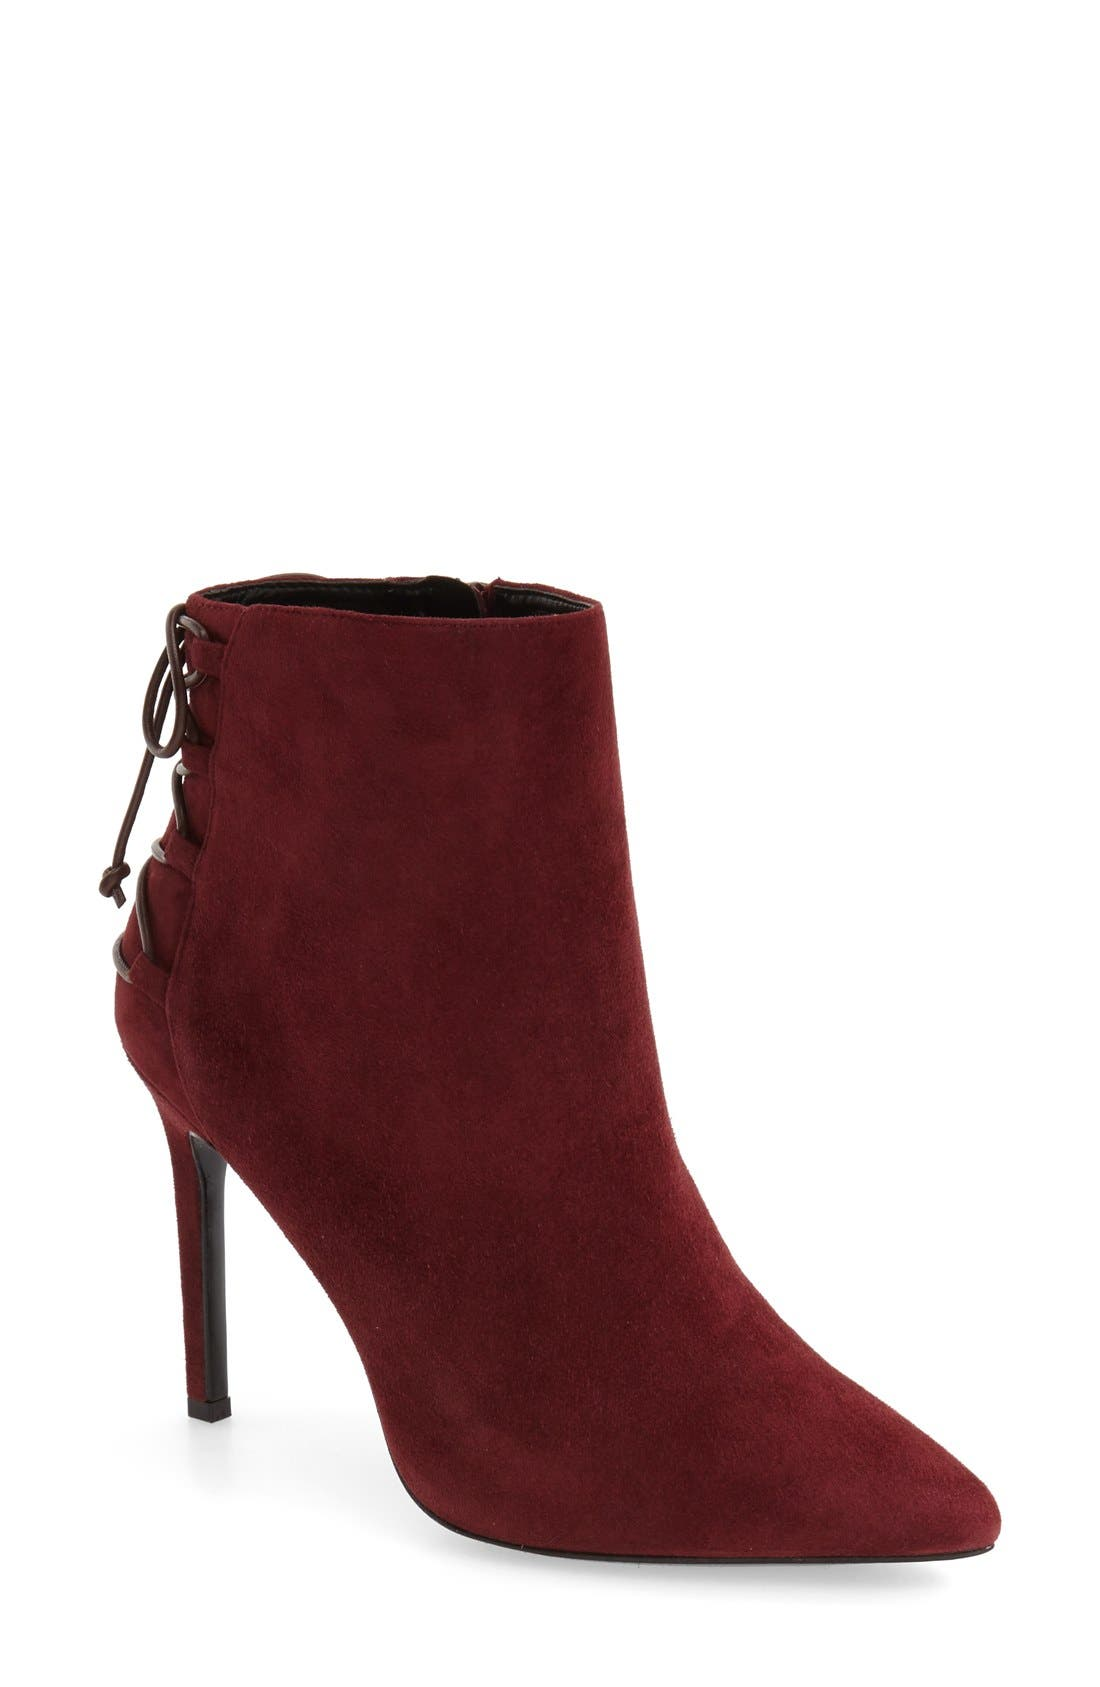 Alternate Image 1 Selected - Charles David 'Catherine' Pointy Toe Bootie (Women)